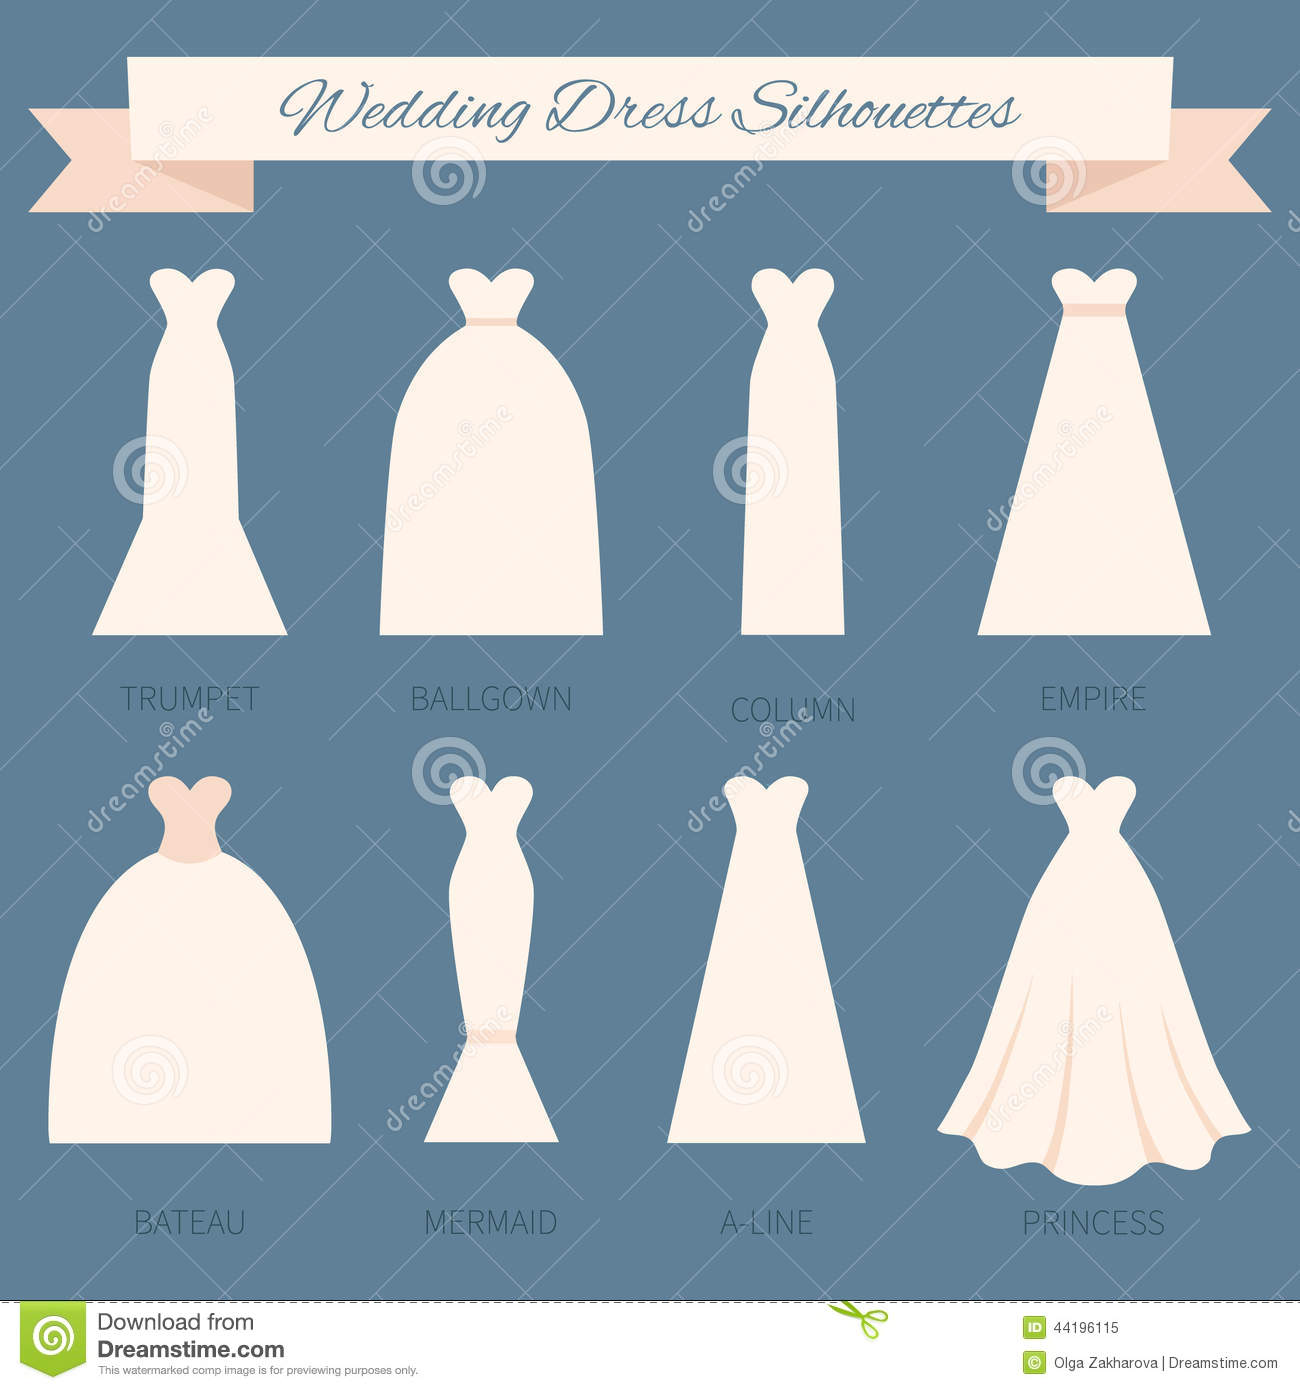 Wedding Dress For Body Types Guide : Types or styles of wedding dresses it helps to know your body type